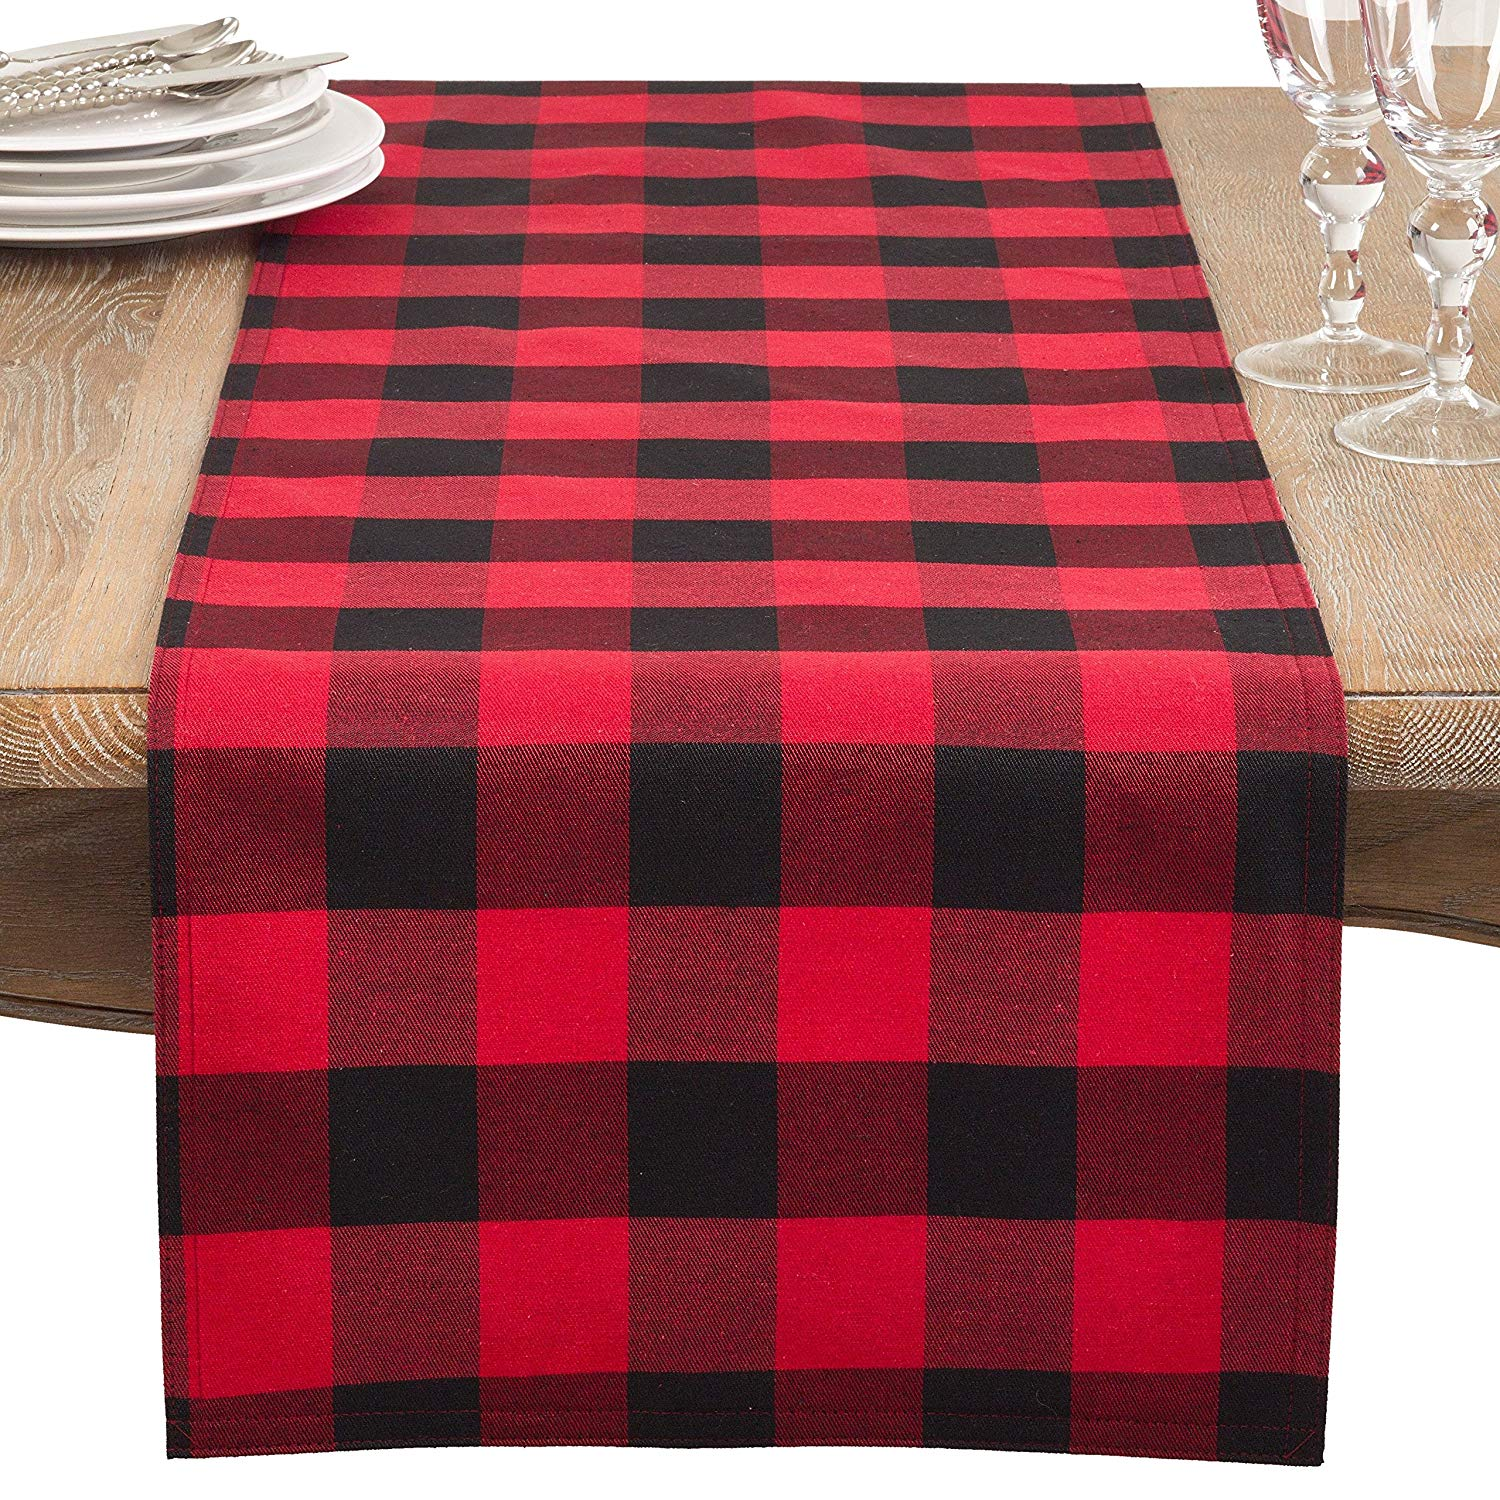 "16"" X 72""inch Red Black Multi Colored Buffalo Plaid Patterned Table Runner, 1 Piece Checkered Tartan Glen Check Geometric Squared Box Design Dining Table Linen Log Cabin, Polyester"